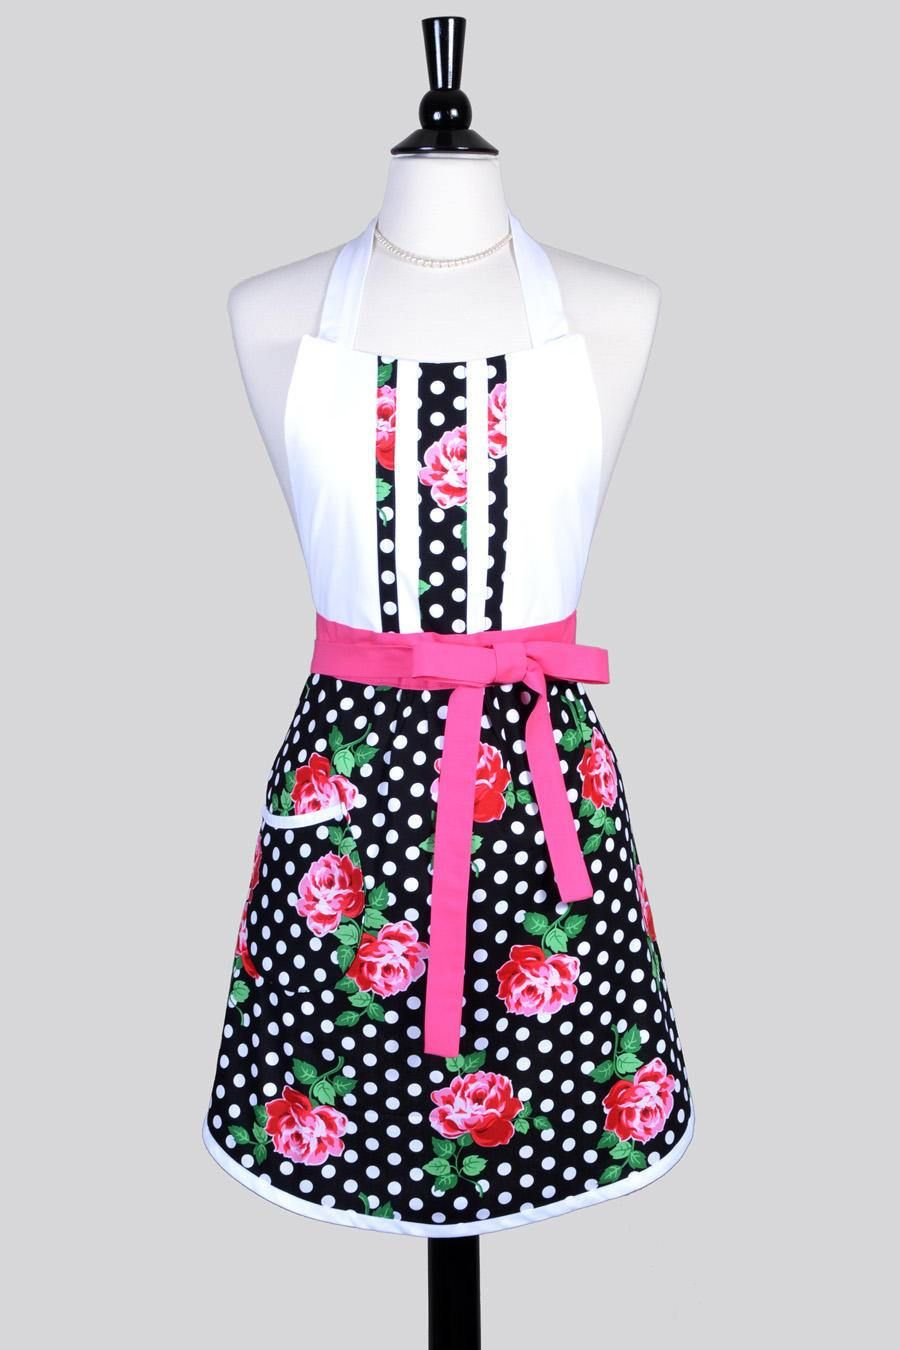 Black and white kitchen apron